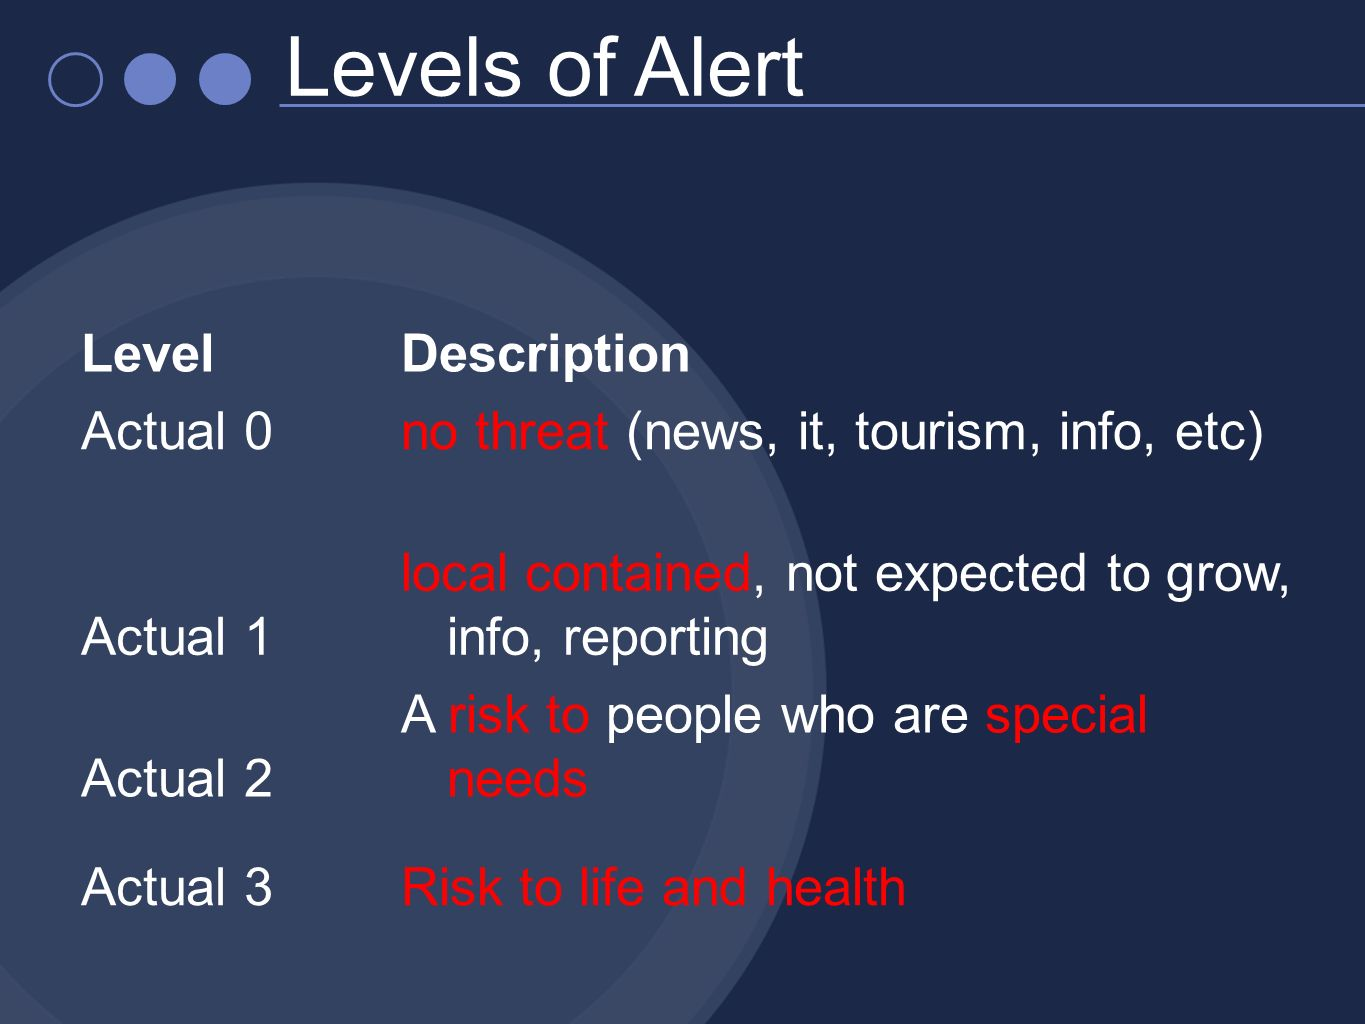 LevelDescription Actual 0no threat (news, it, tourism, info, etc) Actual 1 local contained, not expected to grow, info, reporting Actual 2 A risk to people who are special needs Actual 3Risk to life and health Levels of Alert